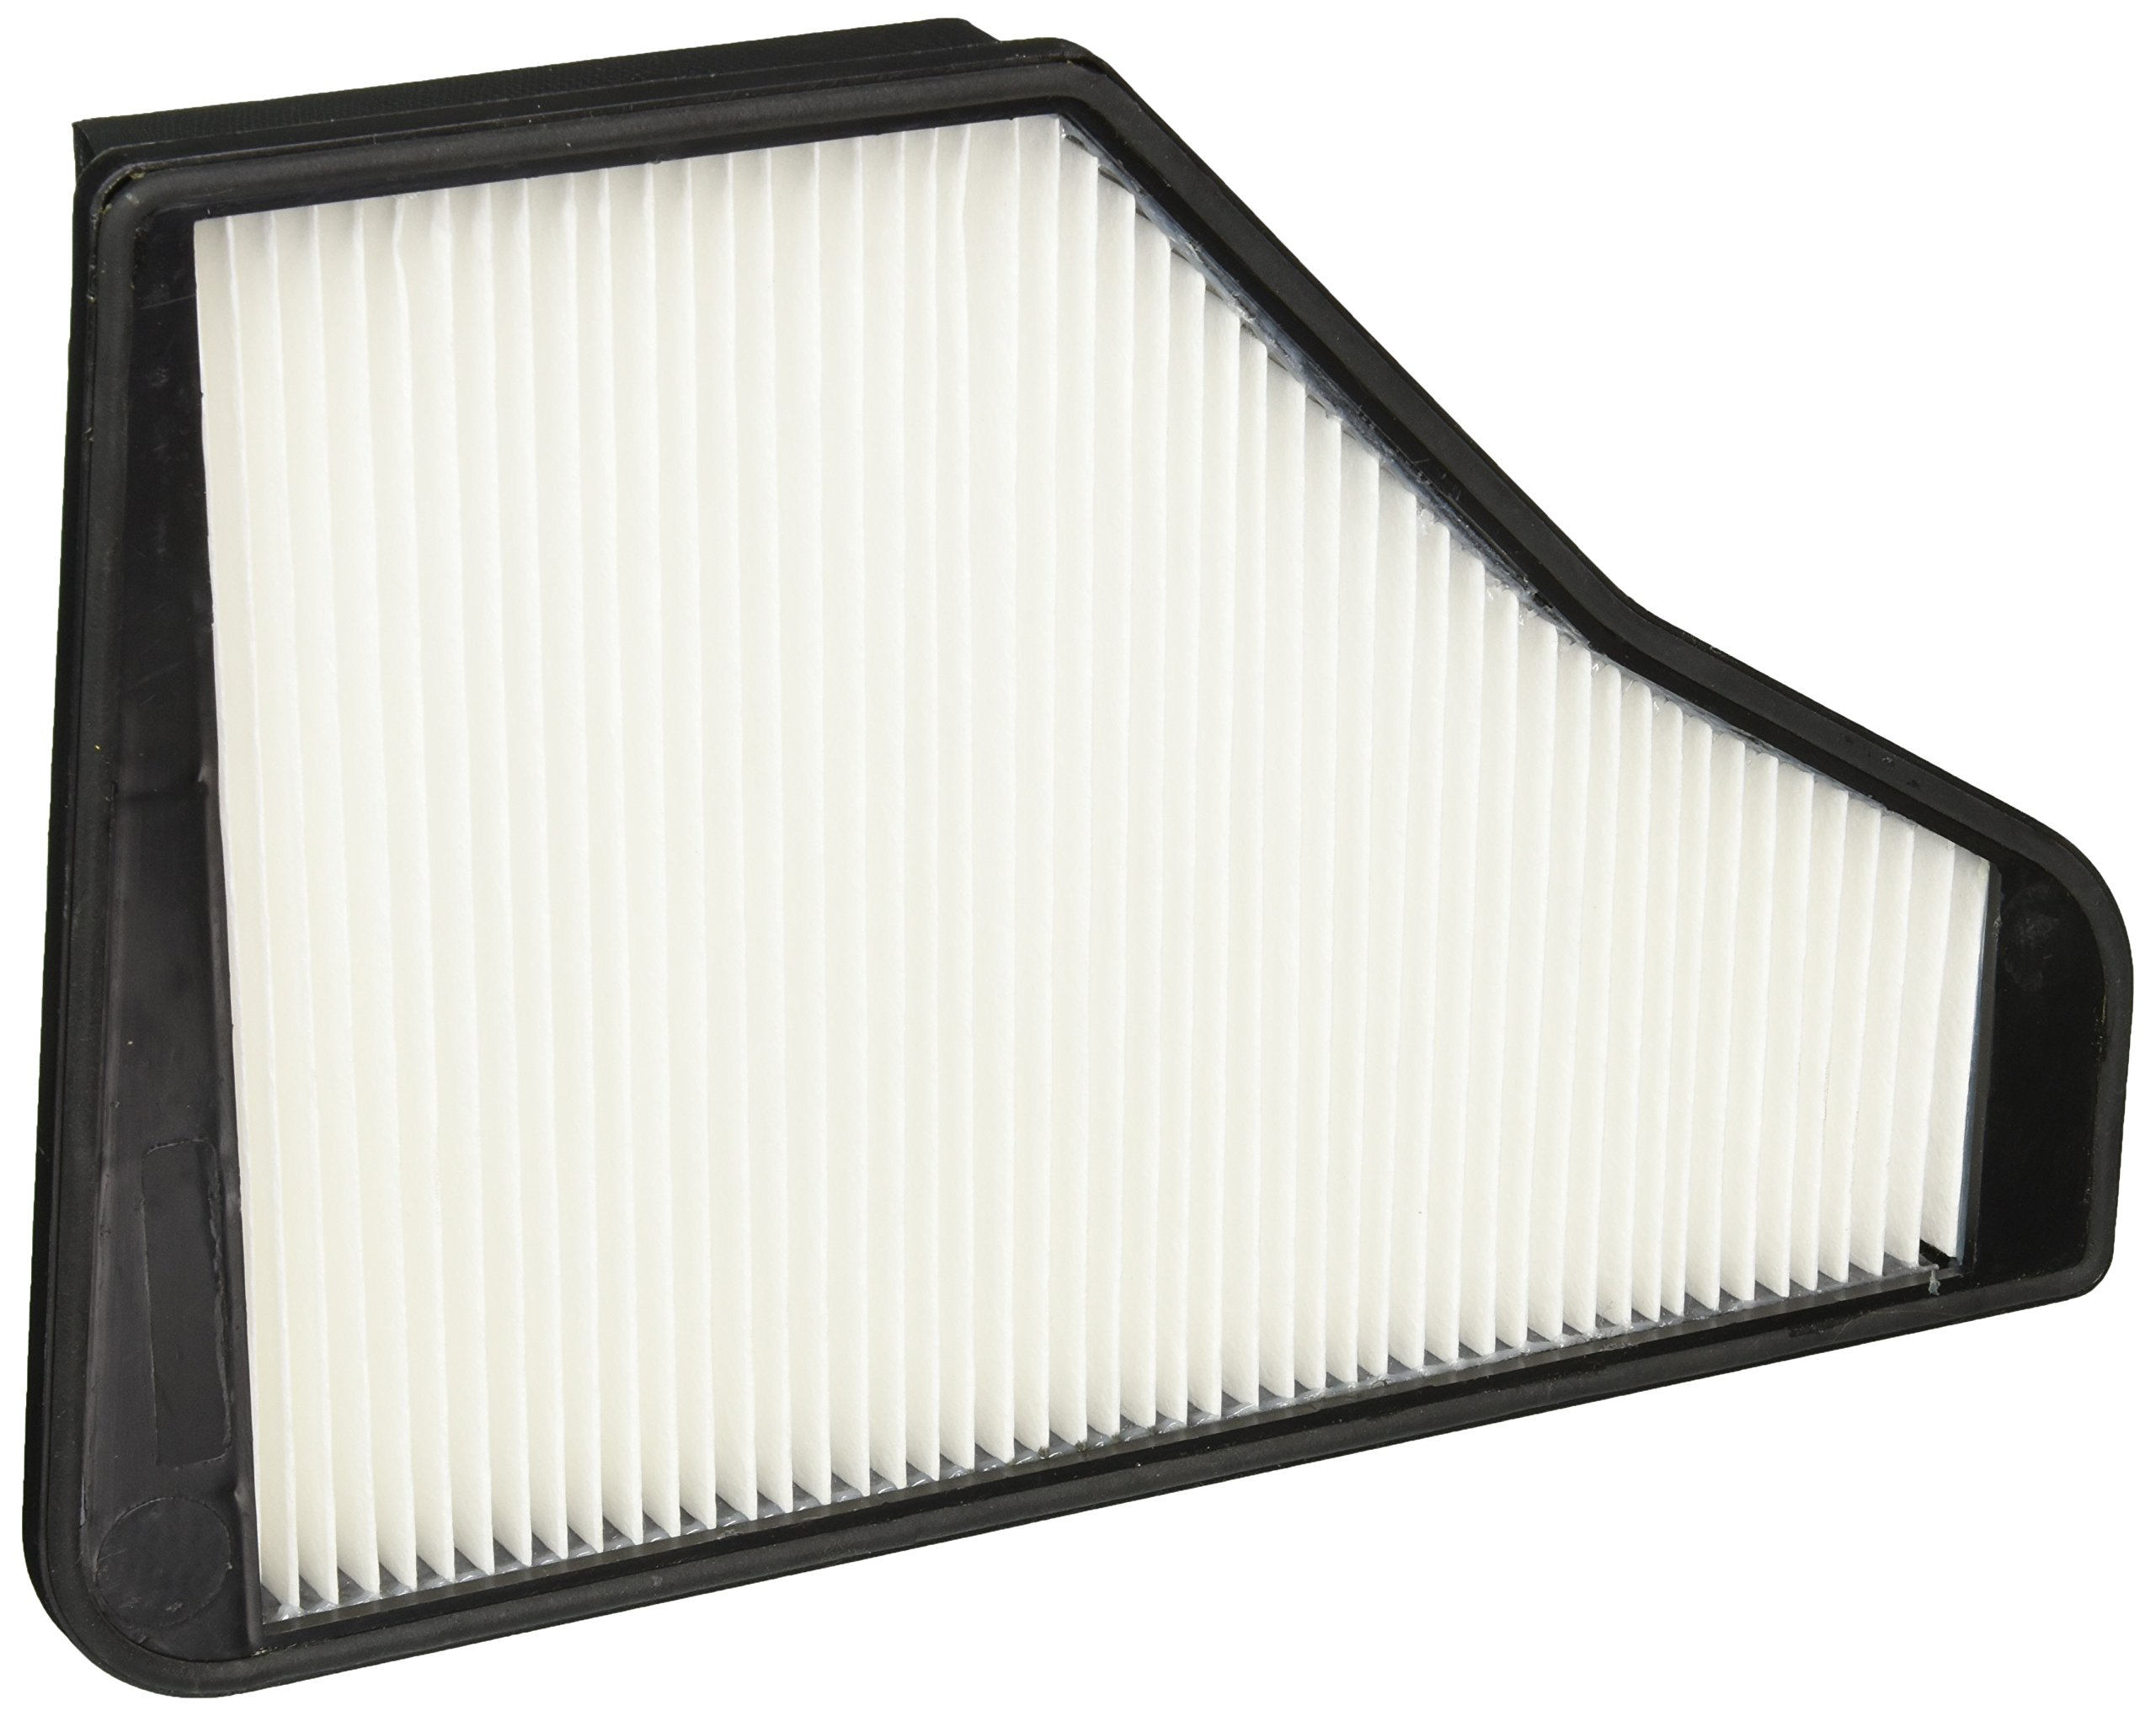 Bosch P3874WS / F00E369800 Workshop Cabin Air Filter For Select Mercedes-Benz CL500, CL600, S320, S350, S420, S500, S600, 300SD, 300SE, 400SE, 500SEL, 600SEL